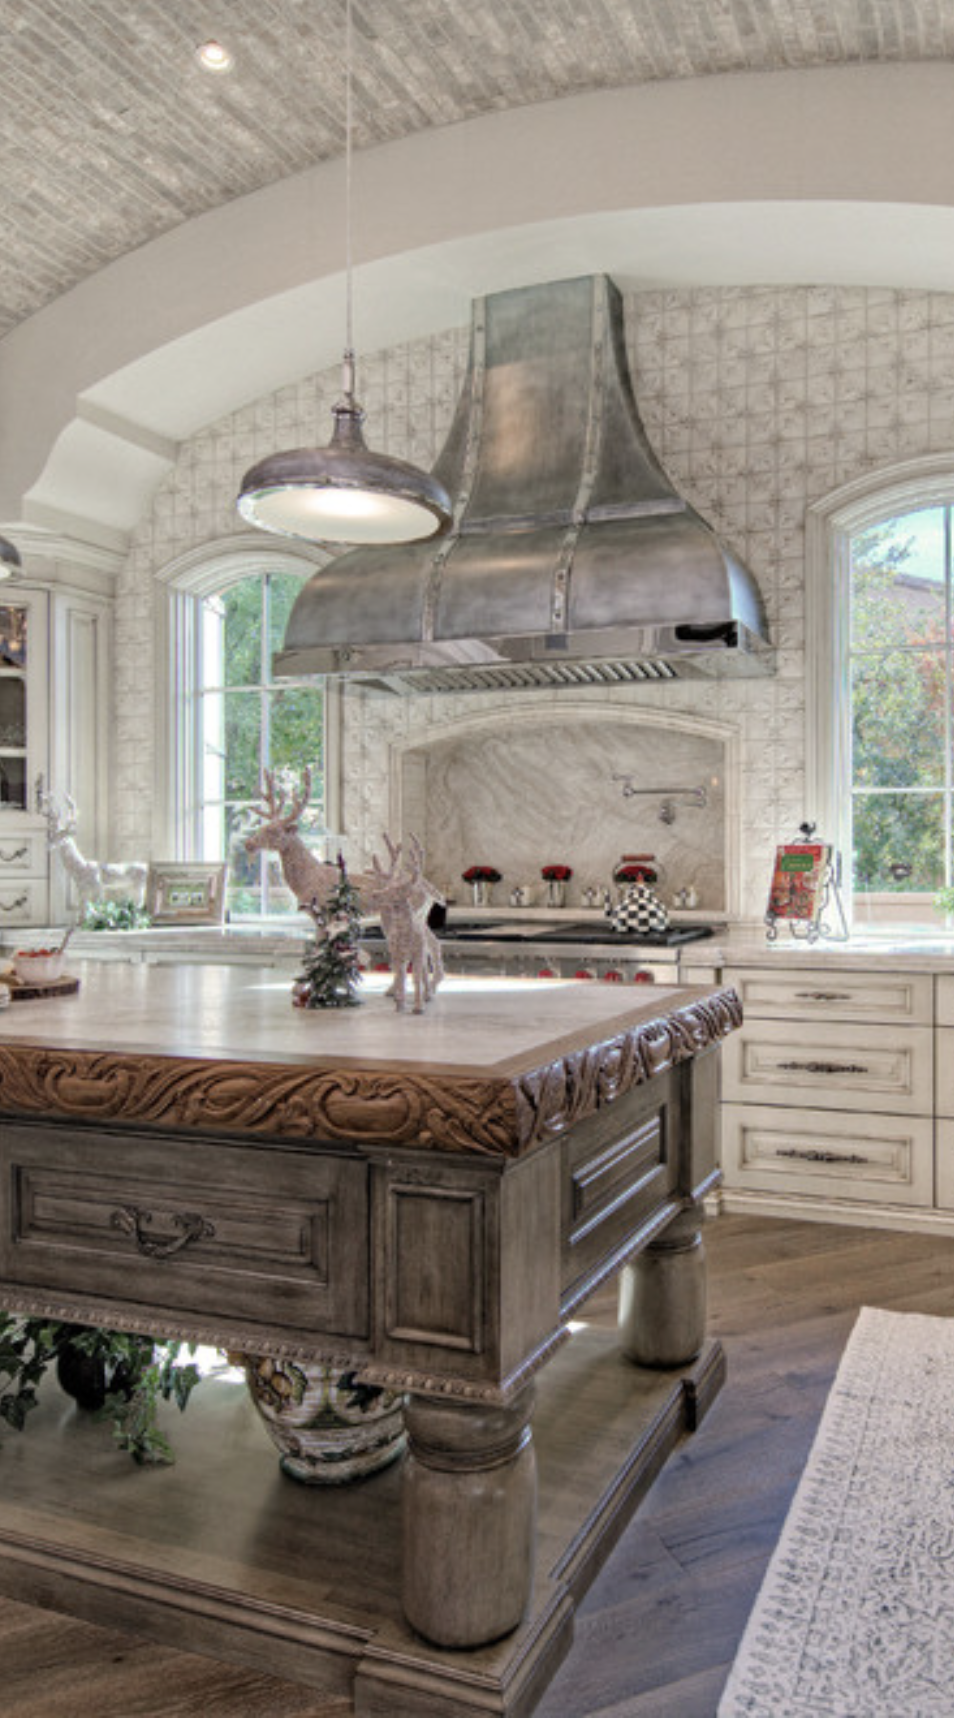 OLD WORLD KITCHEN with their large cooking hearths or ...